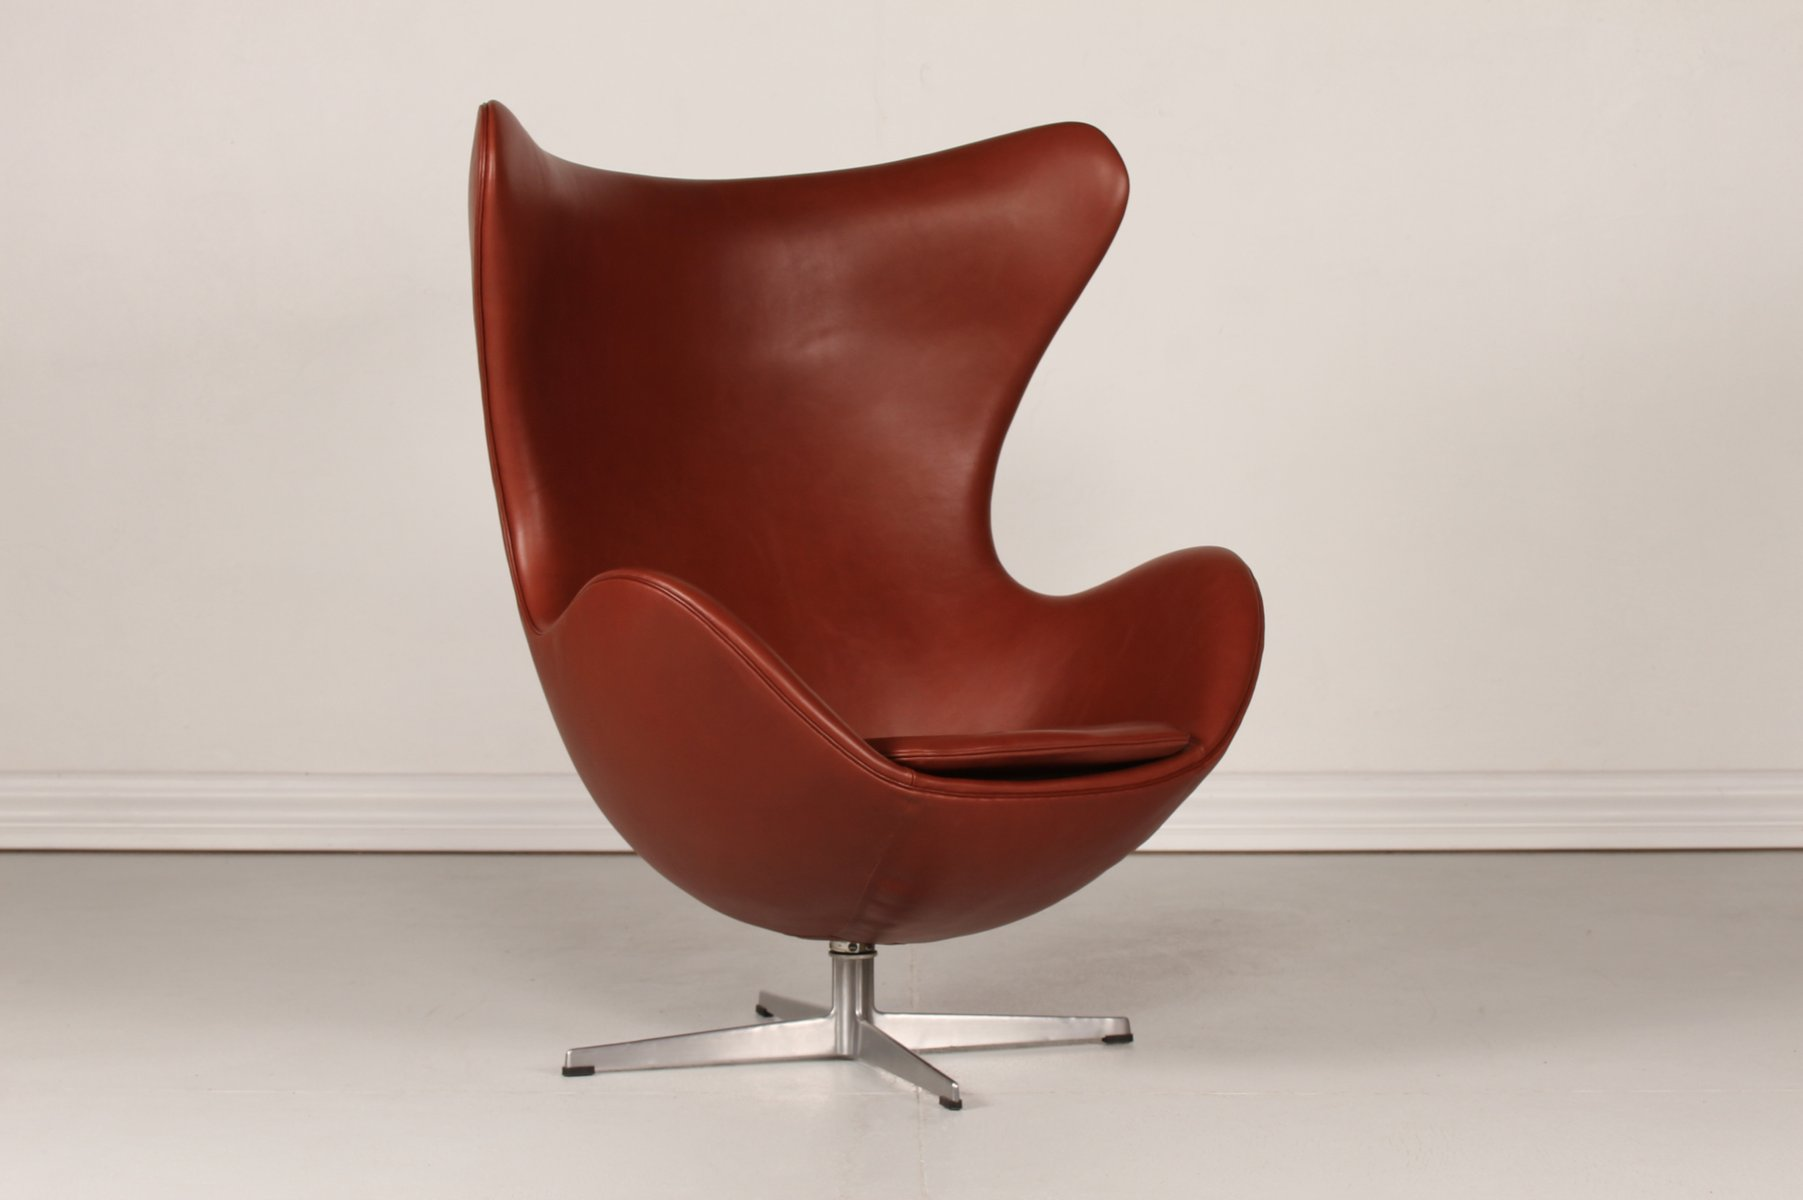 3316 cognac leather egg chair by arne jacobsen for fritz. Black Bedroom Furniture Sets. Home Design Ideas